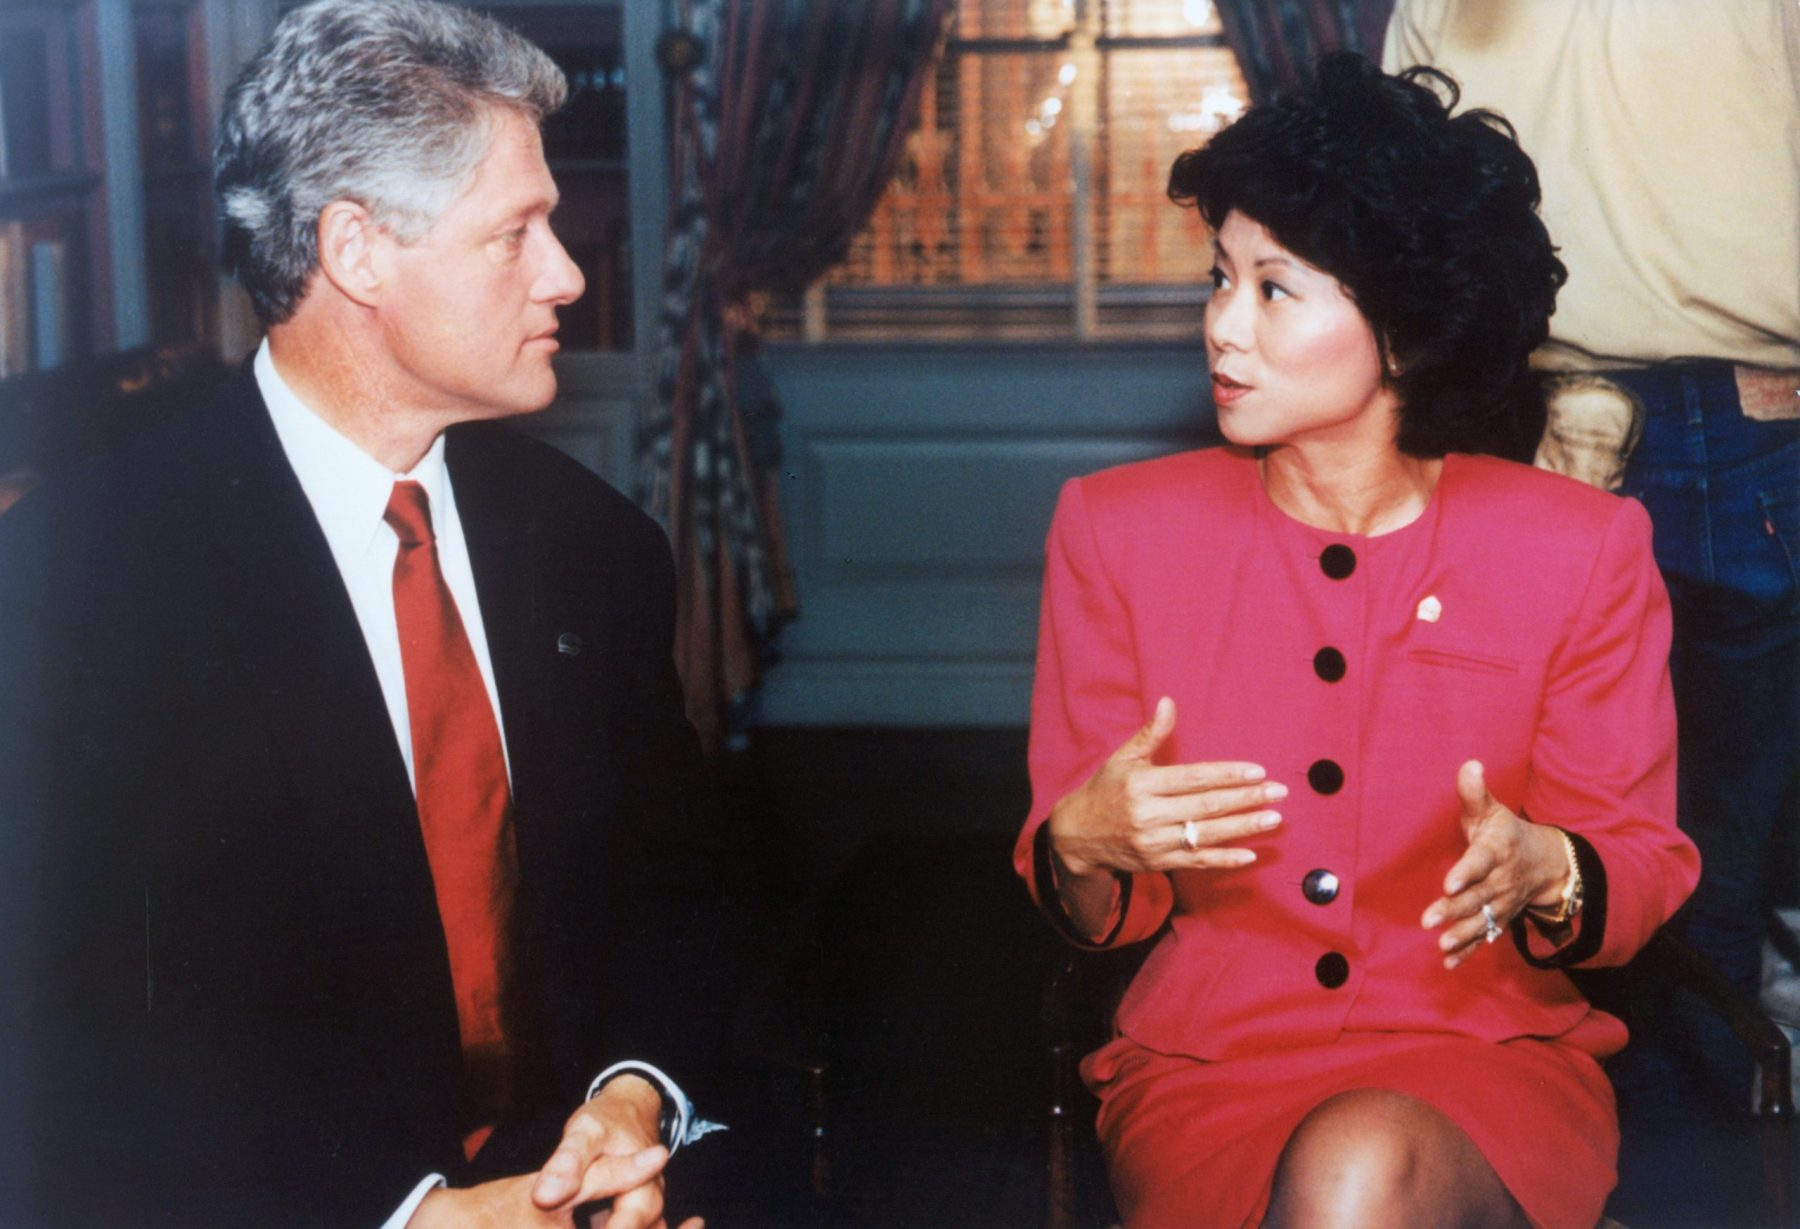 United Way of America President & CEO Elaine Chao taping a United Way commercial with President Bill Clinton at the White House.